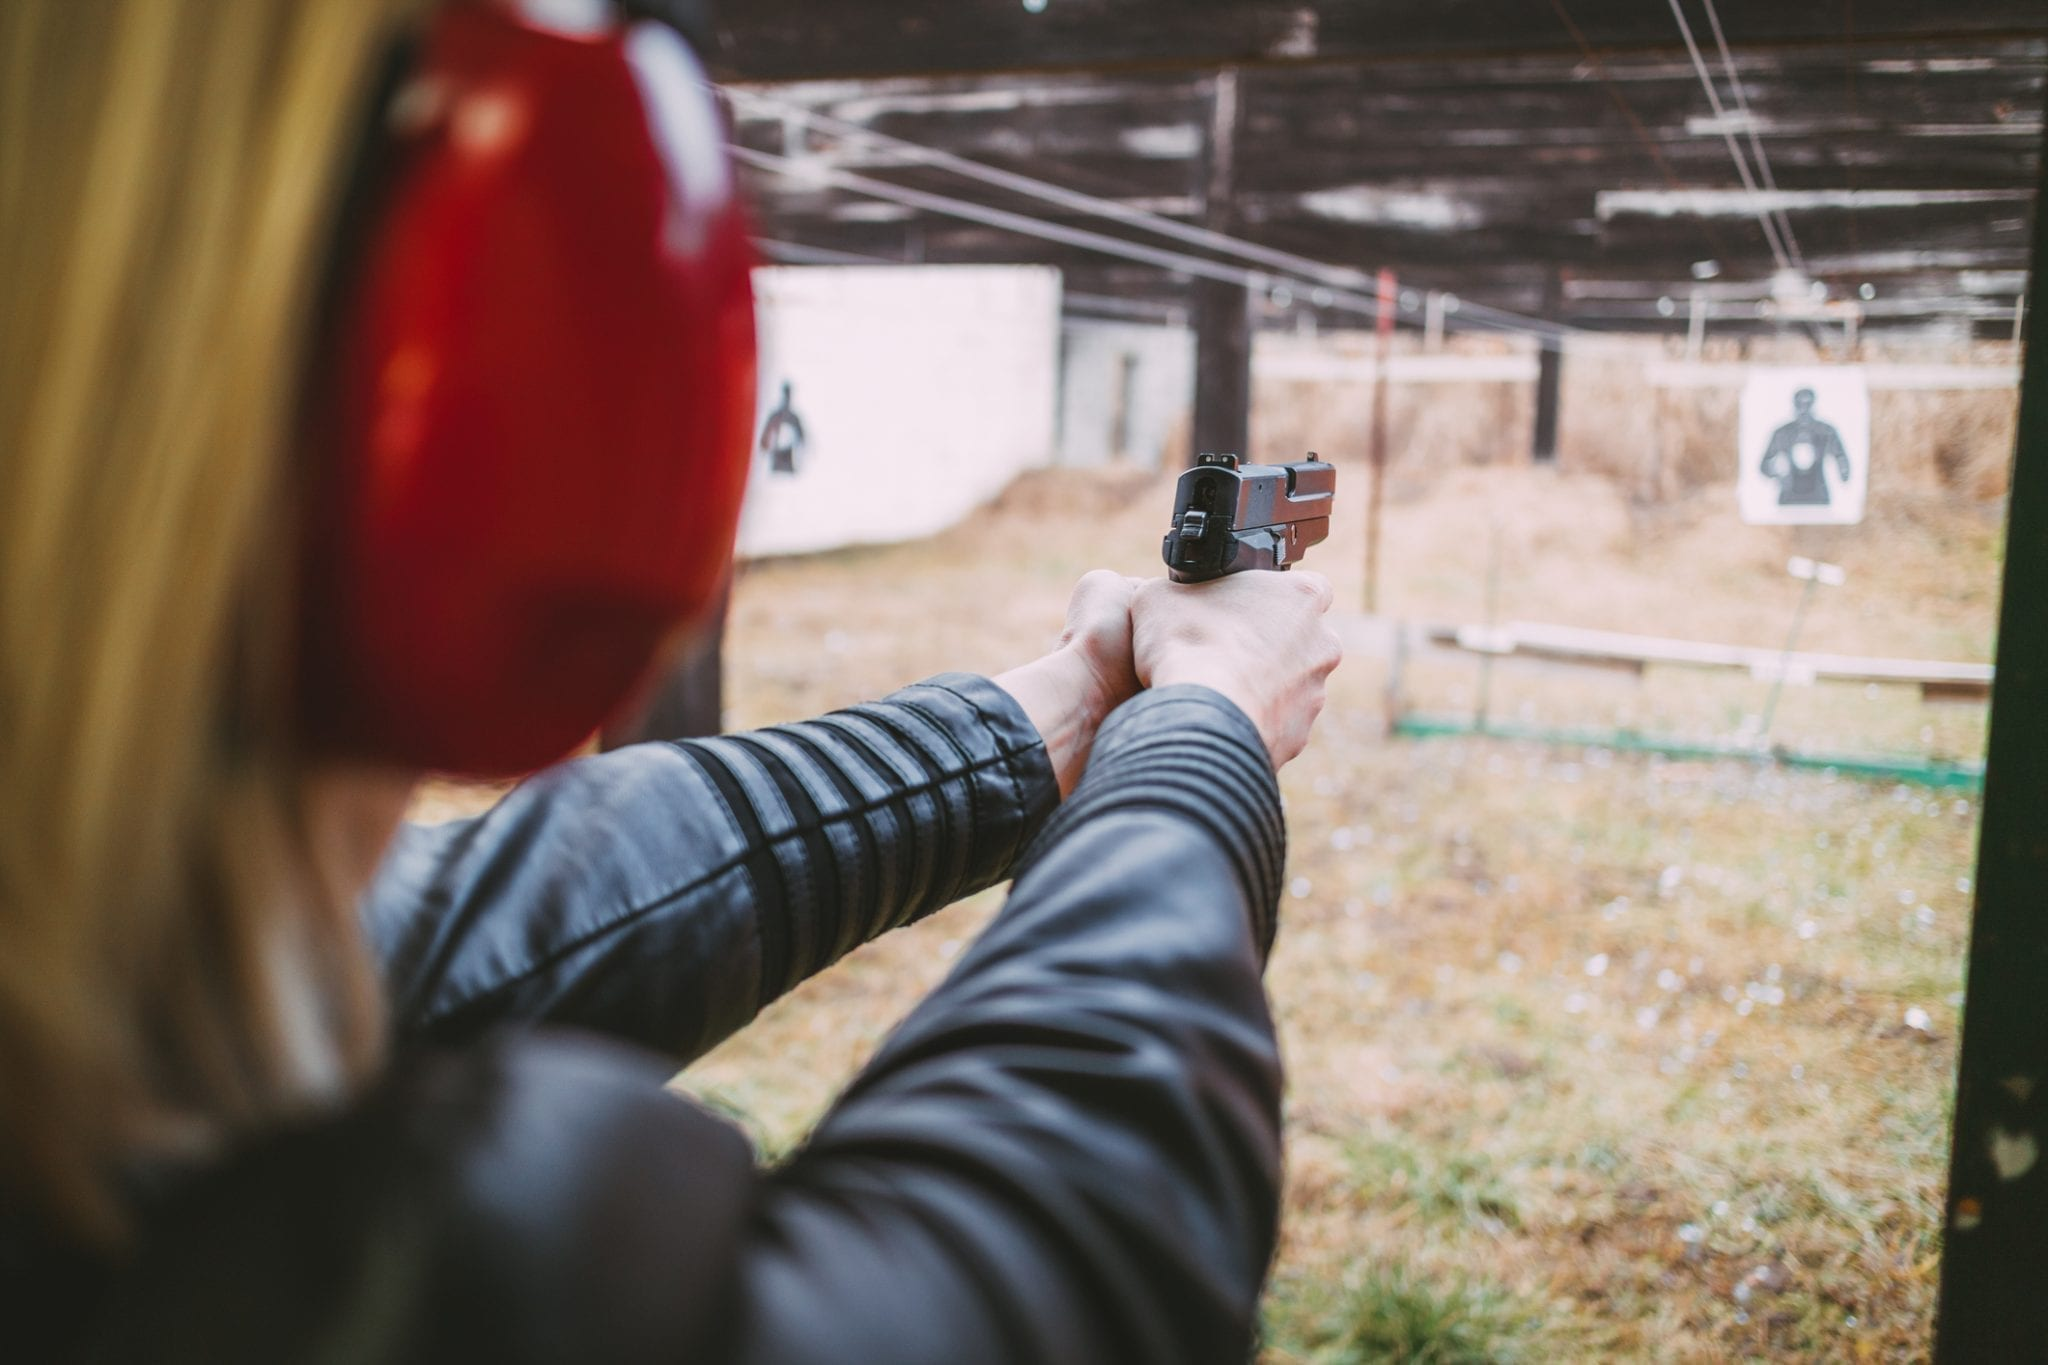 Women Learning to Shoot and Preventing Violence